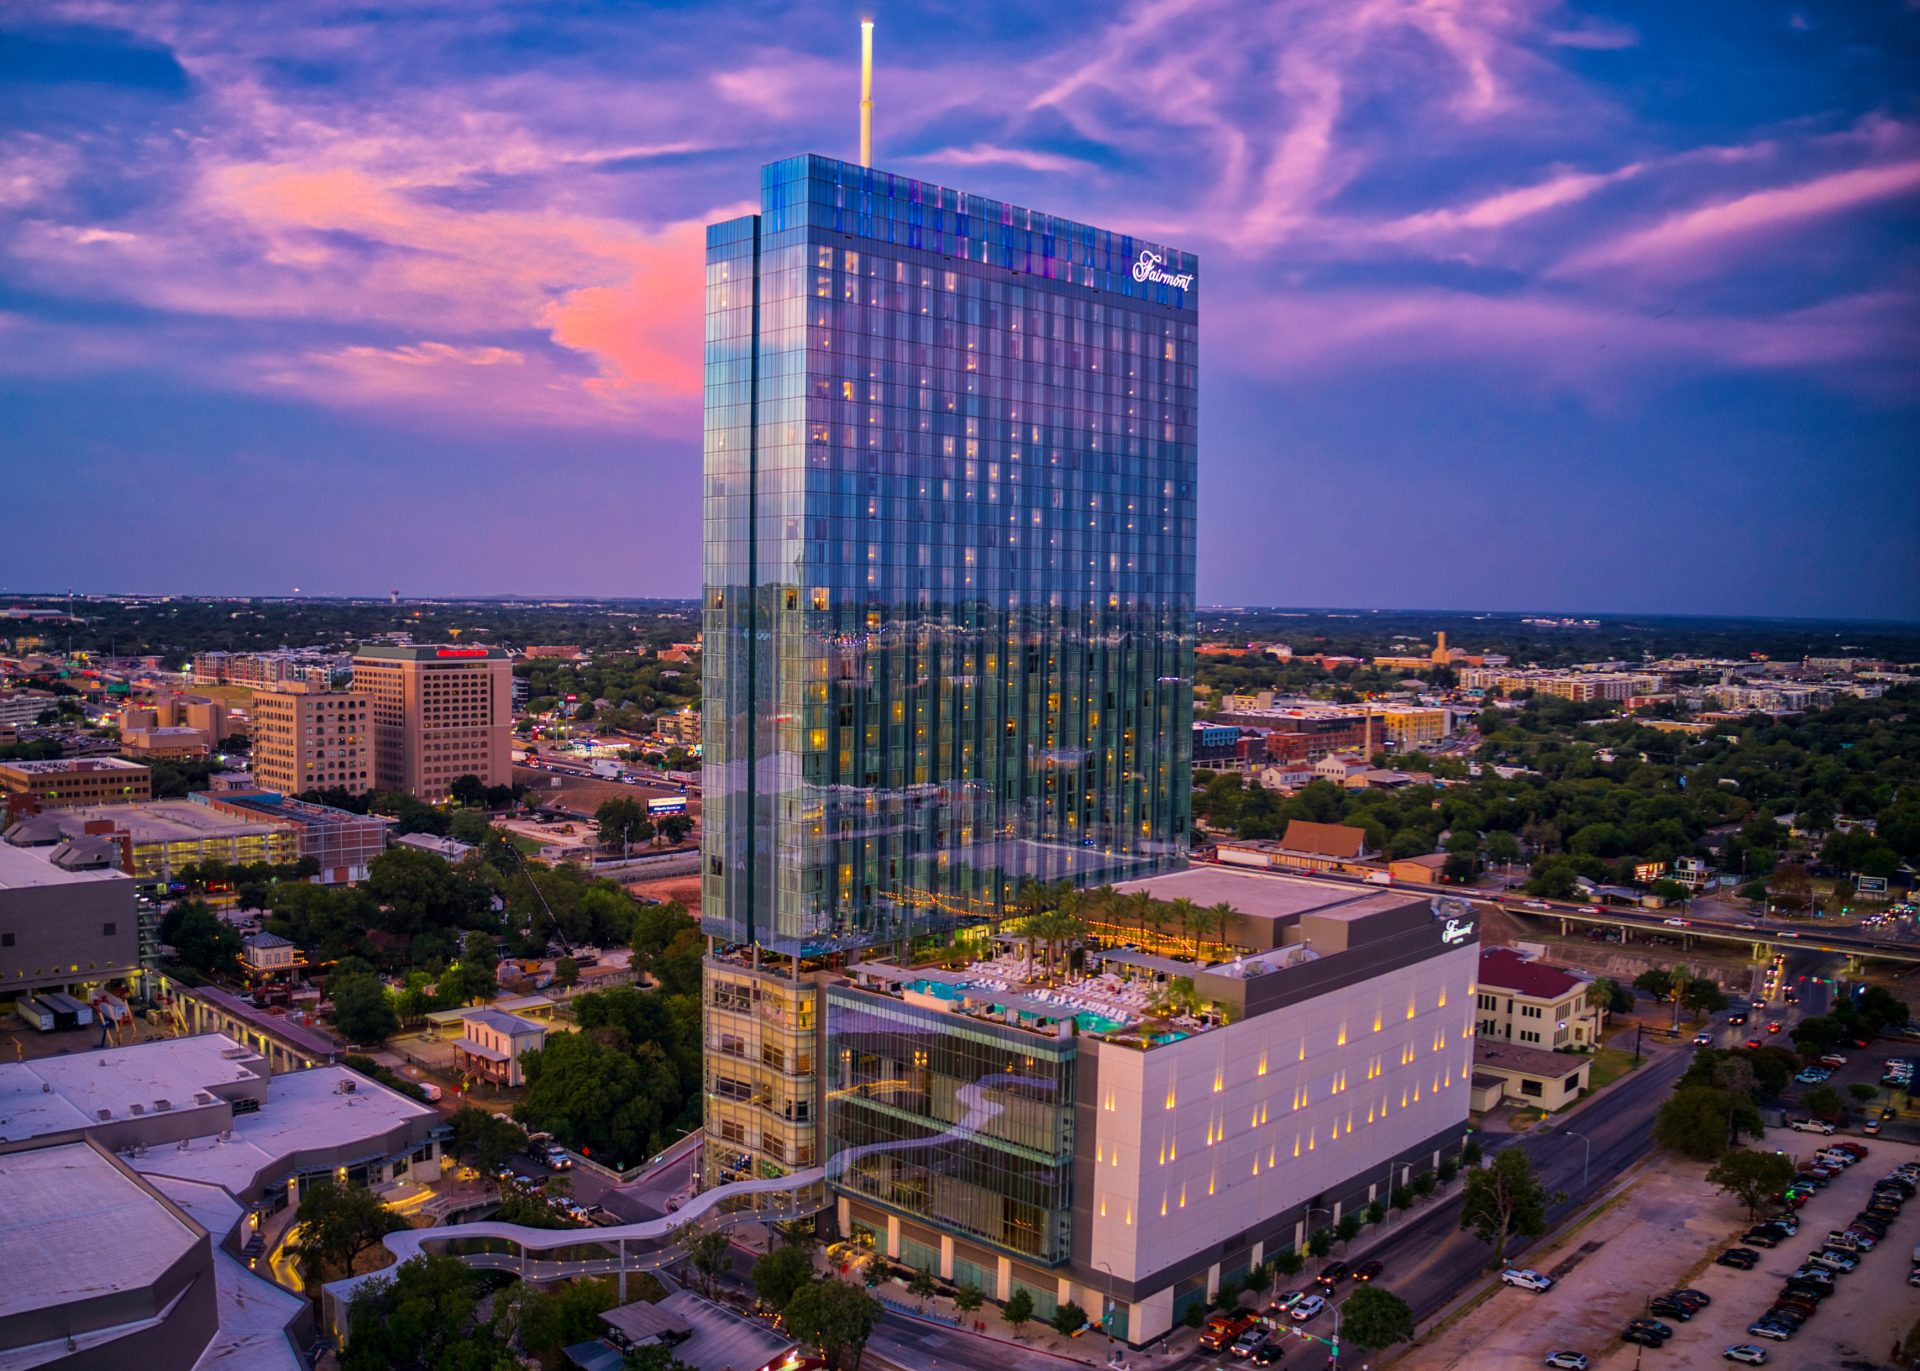 Twilight exterior view of the Faimont Austin reflecting the scenic city